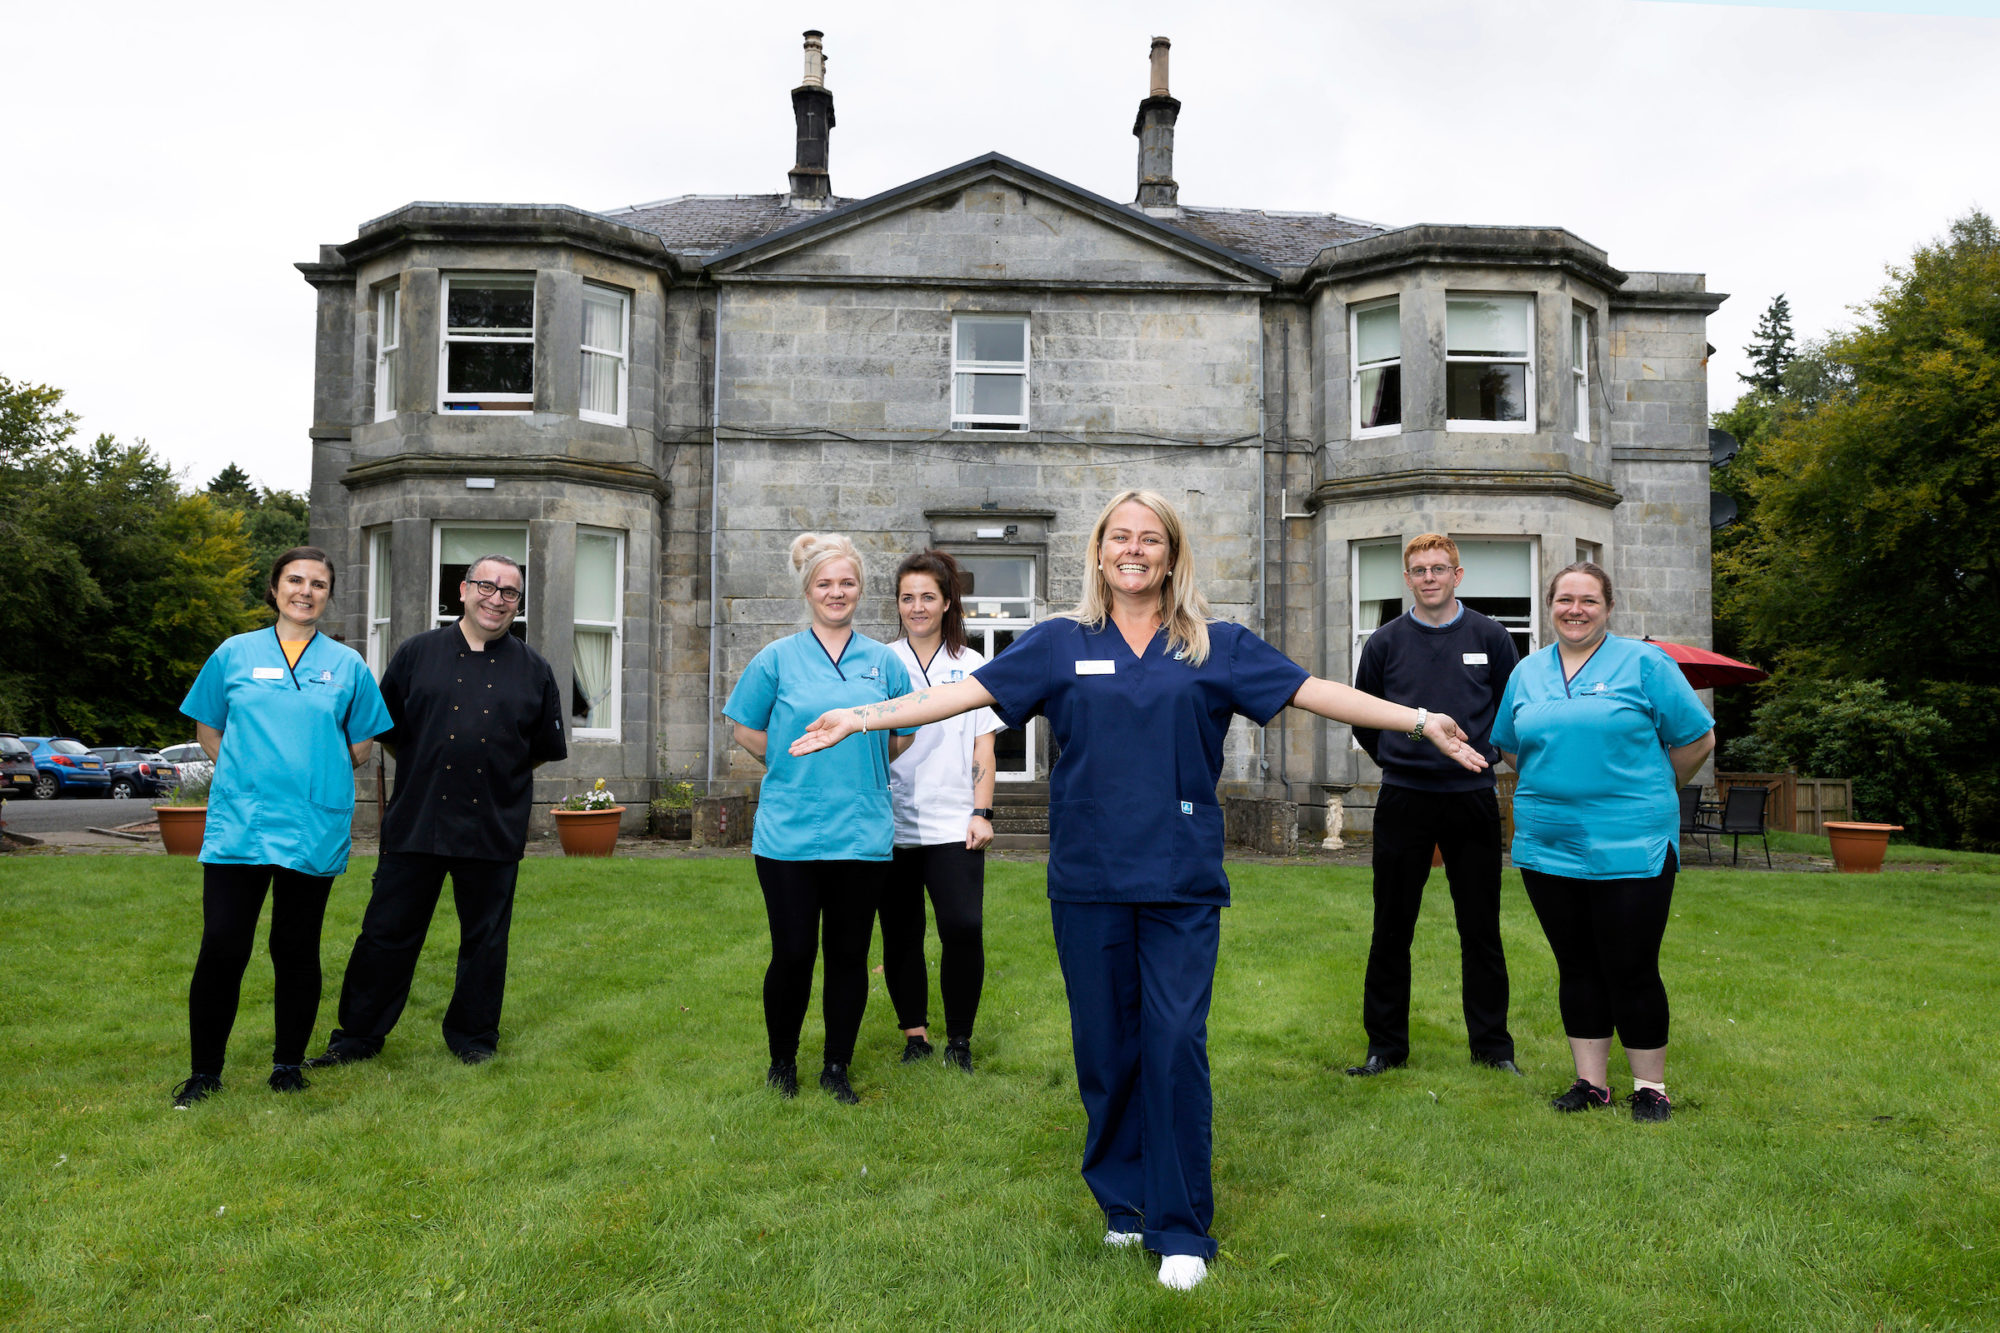 Perthshire care home keeps it all 'in the family' as it employs 15 related staff members